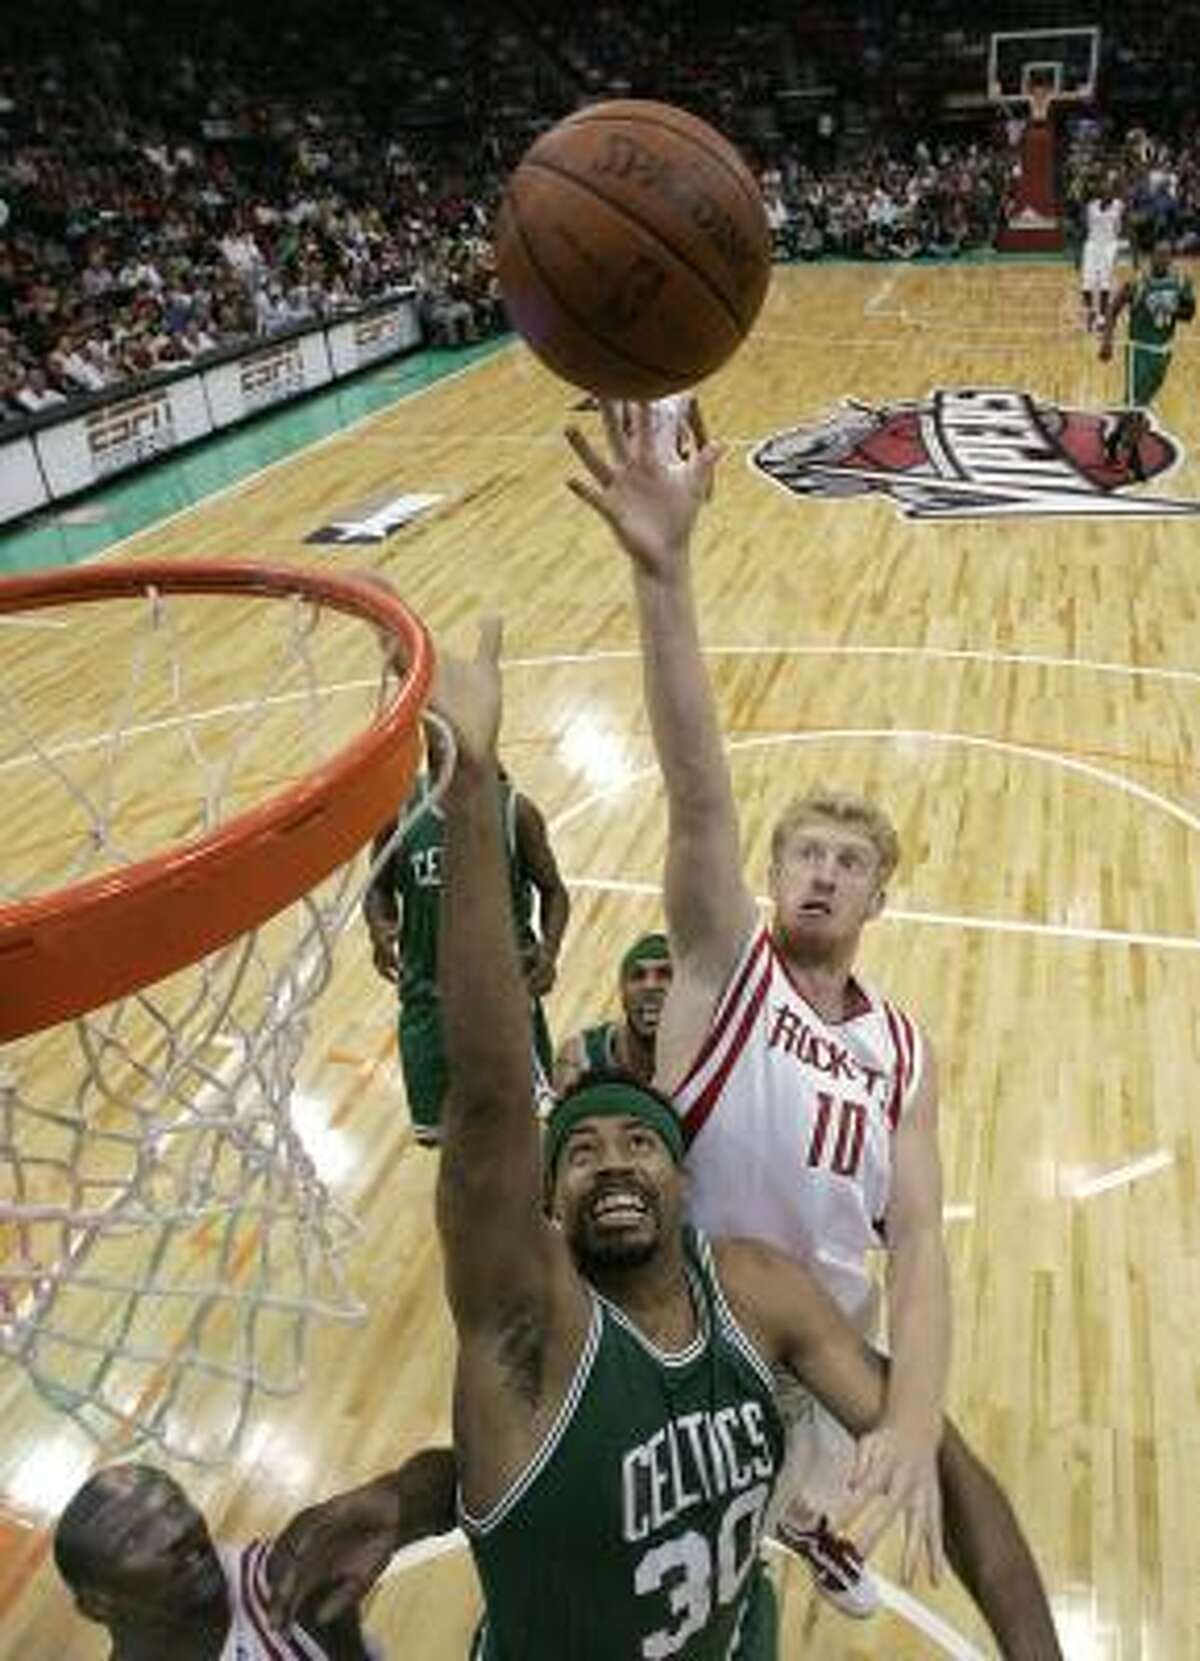 Oct. 7: Rockets 96, Celtics 90 The Celtics' Rasheed Wallace and the Rockets' Chase Budinger jump for a rebound in the first half.